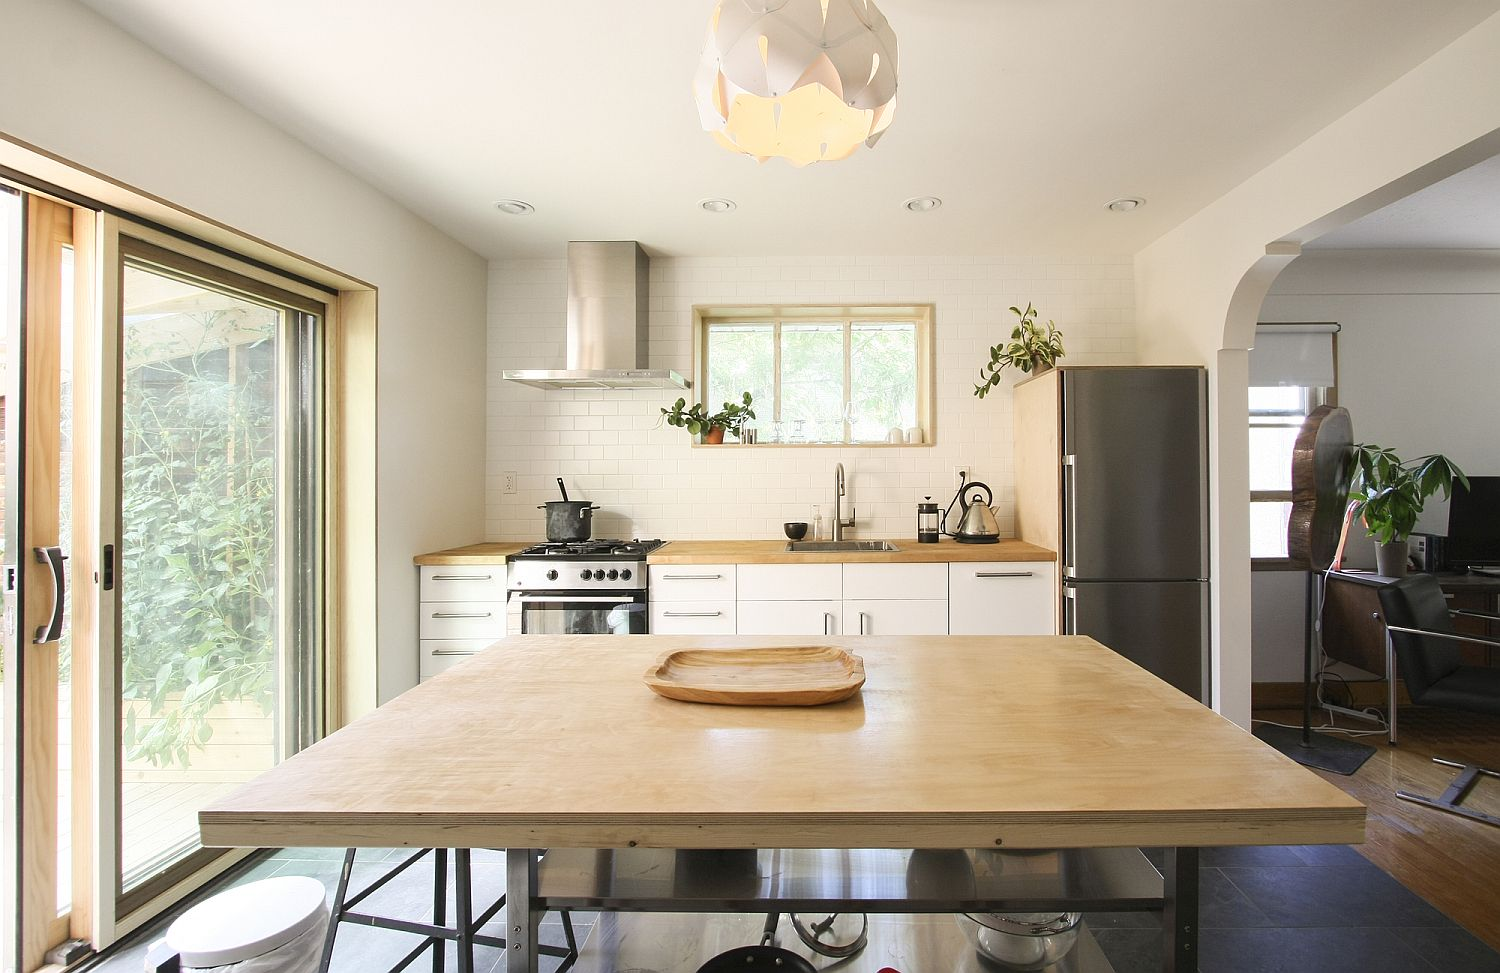 Kitchen and small dining space rolled into one inside this Canadian home